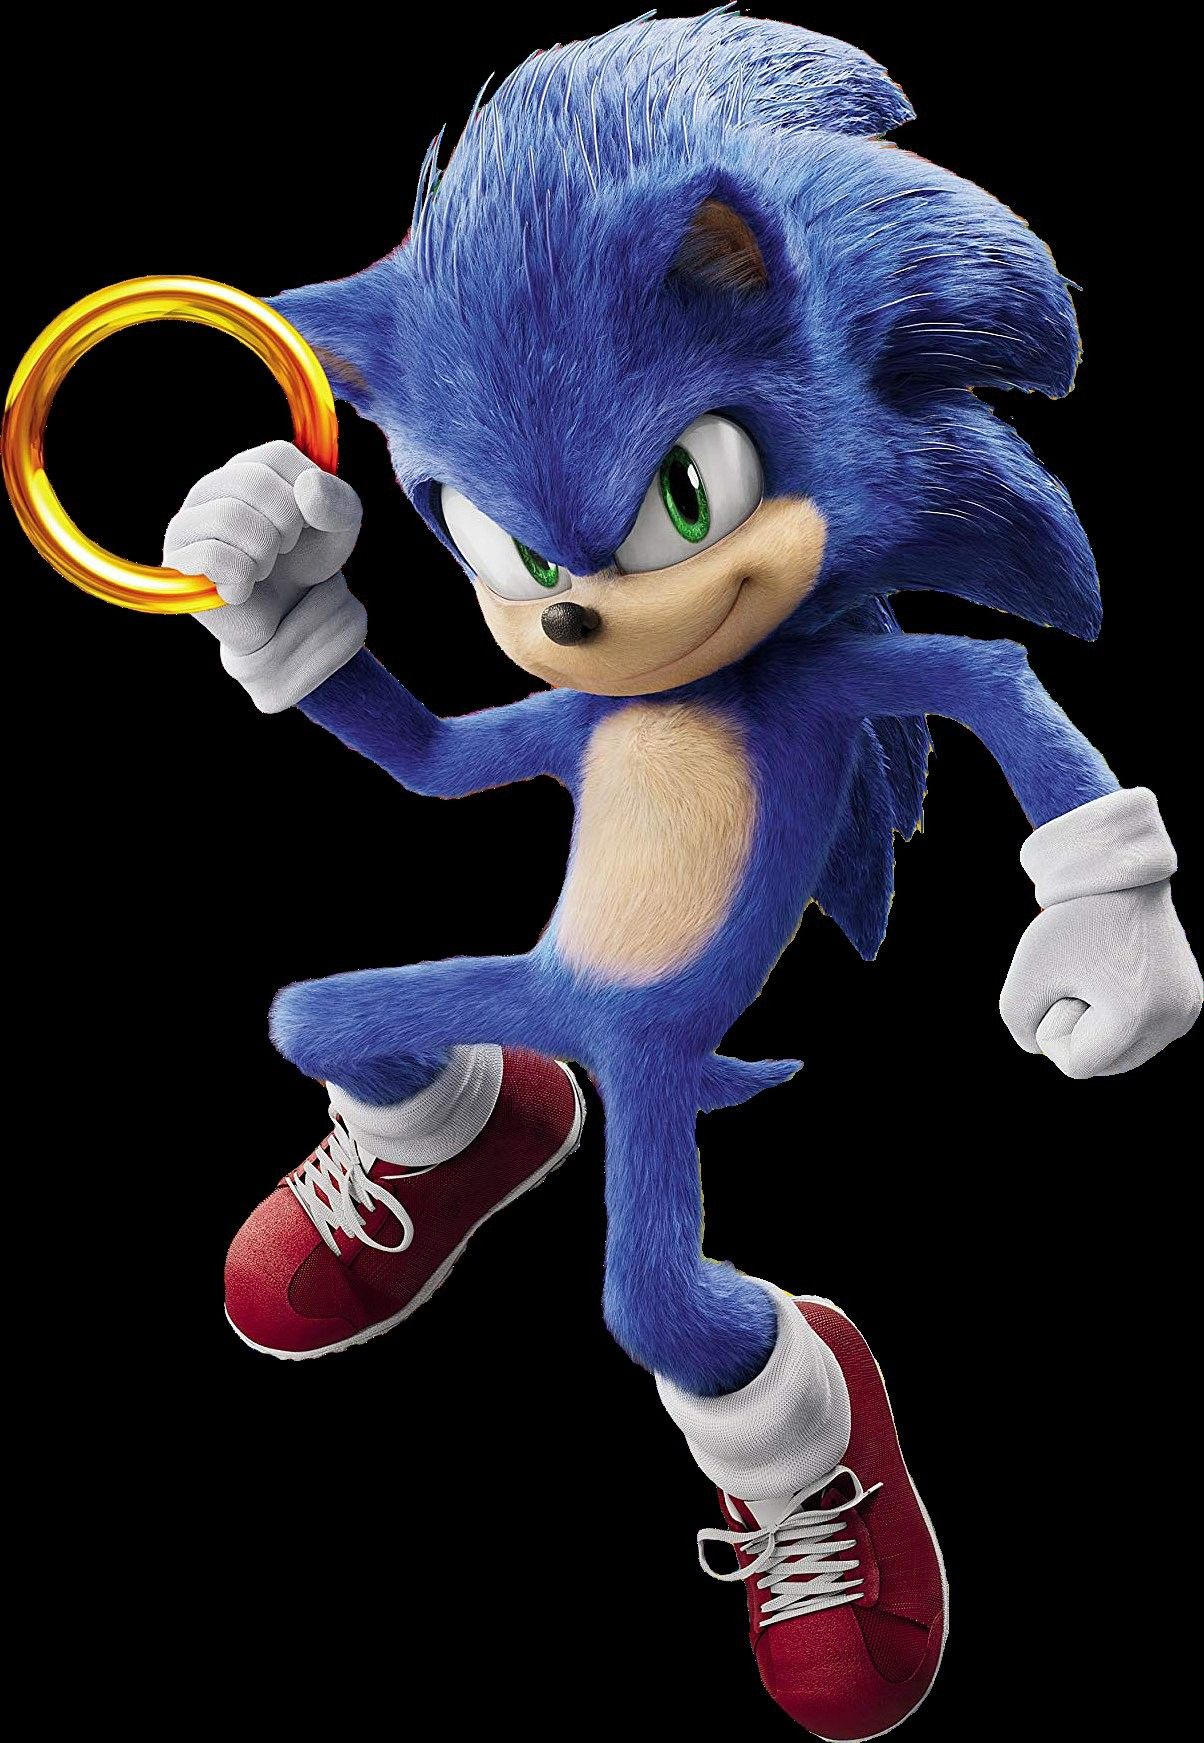 Pin By Anake On Things I Like And Enjoy Or Find Cool In 2020 Sonic Heroes Sonic The Hedgehog Sonic